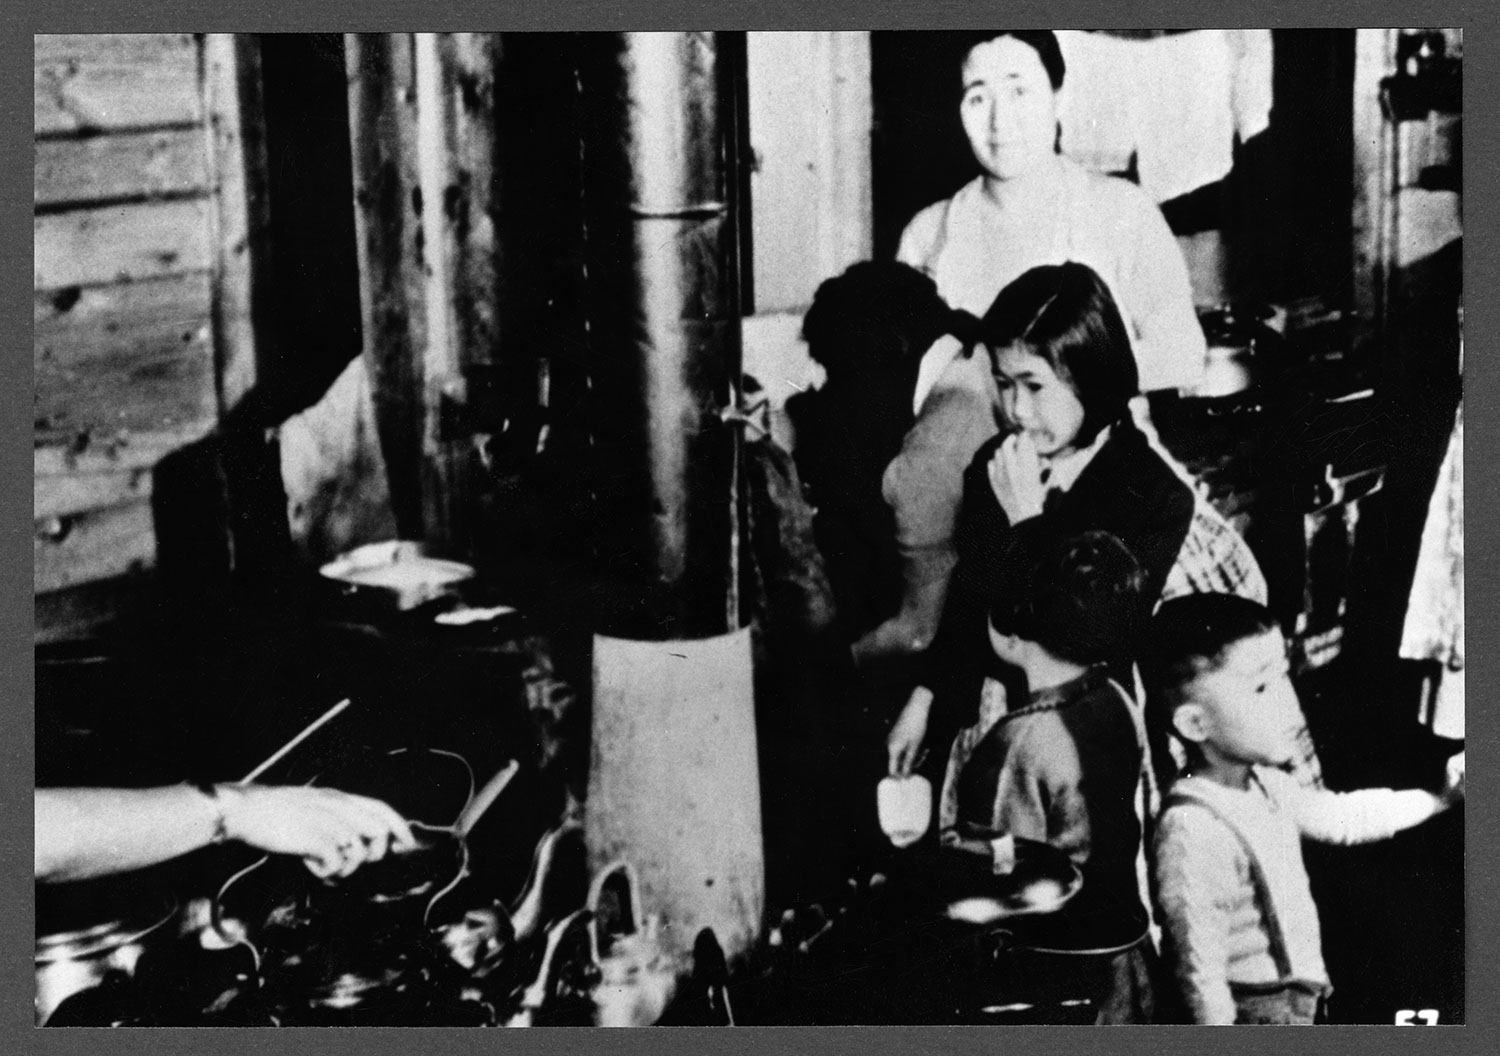 Japanese Canadians in an internment camp: Recto